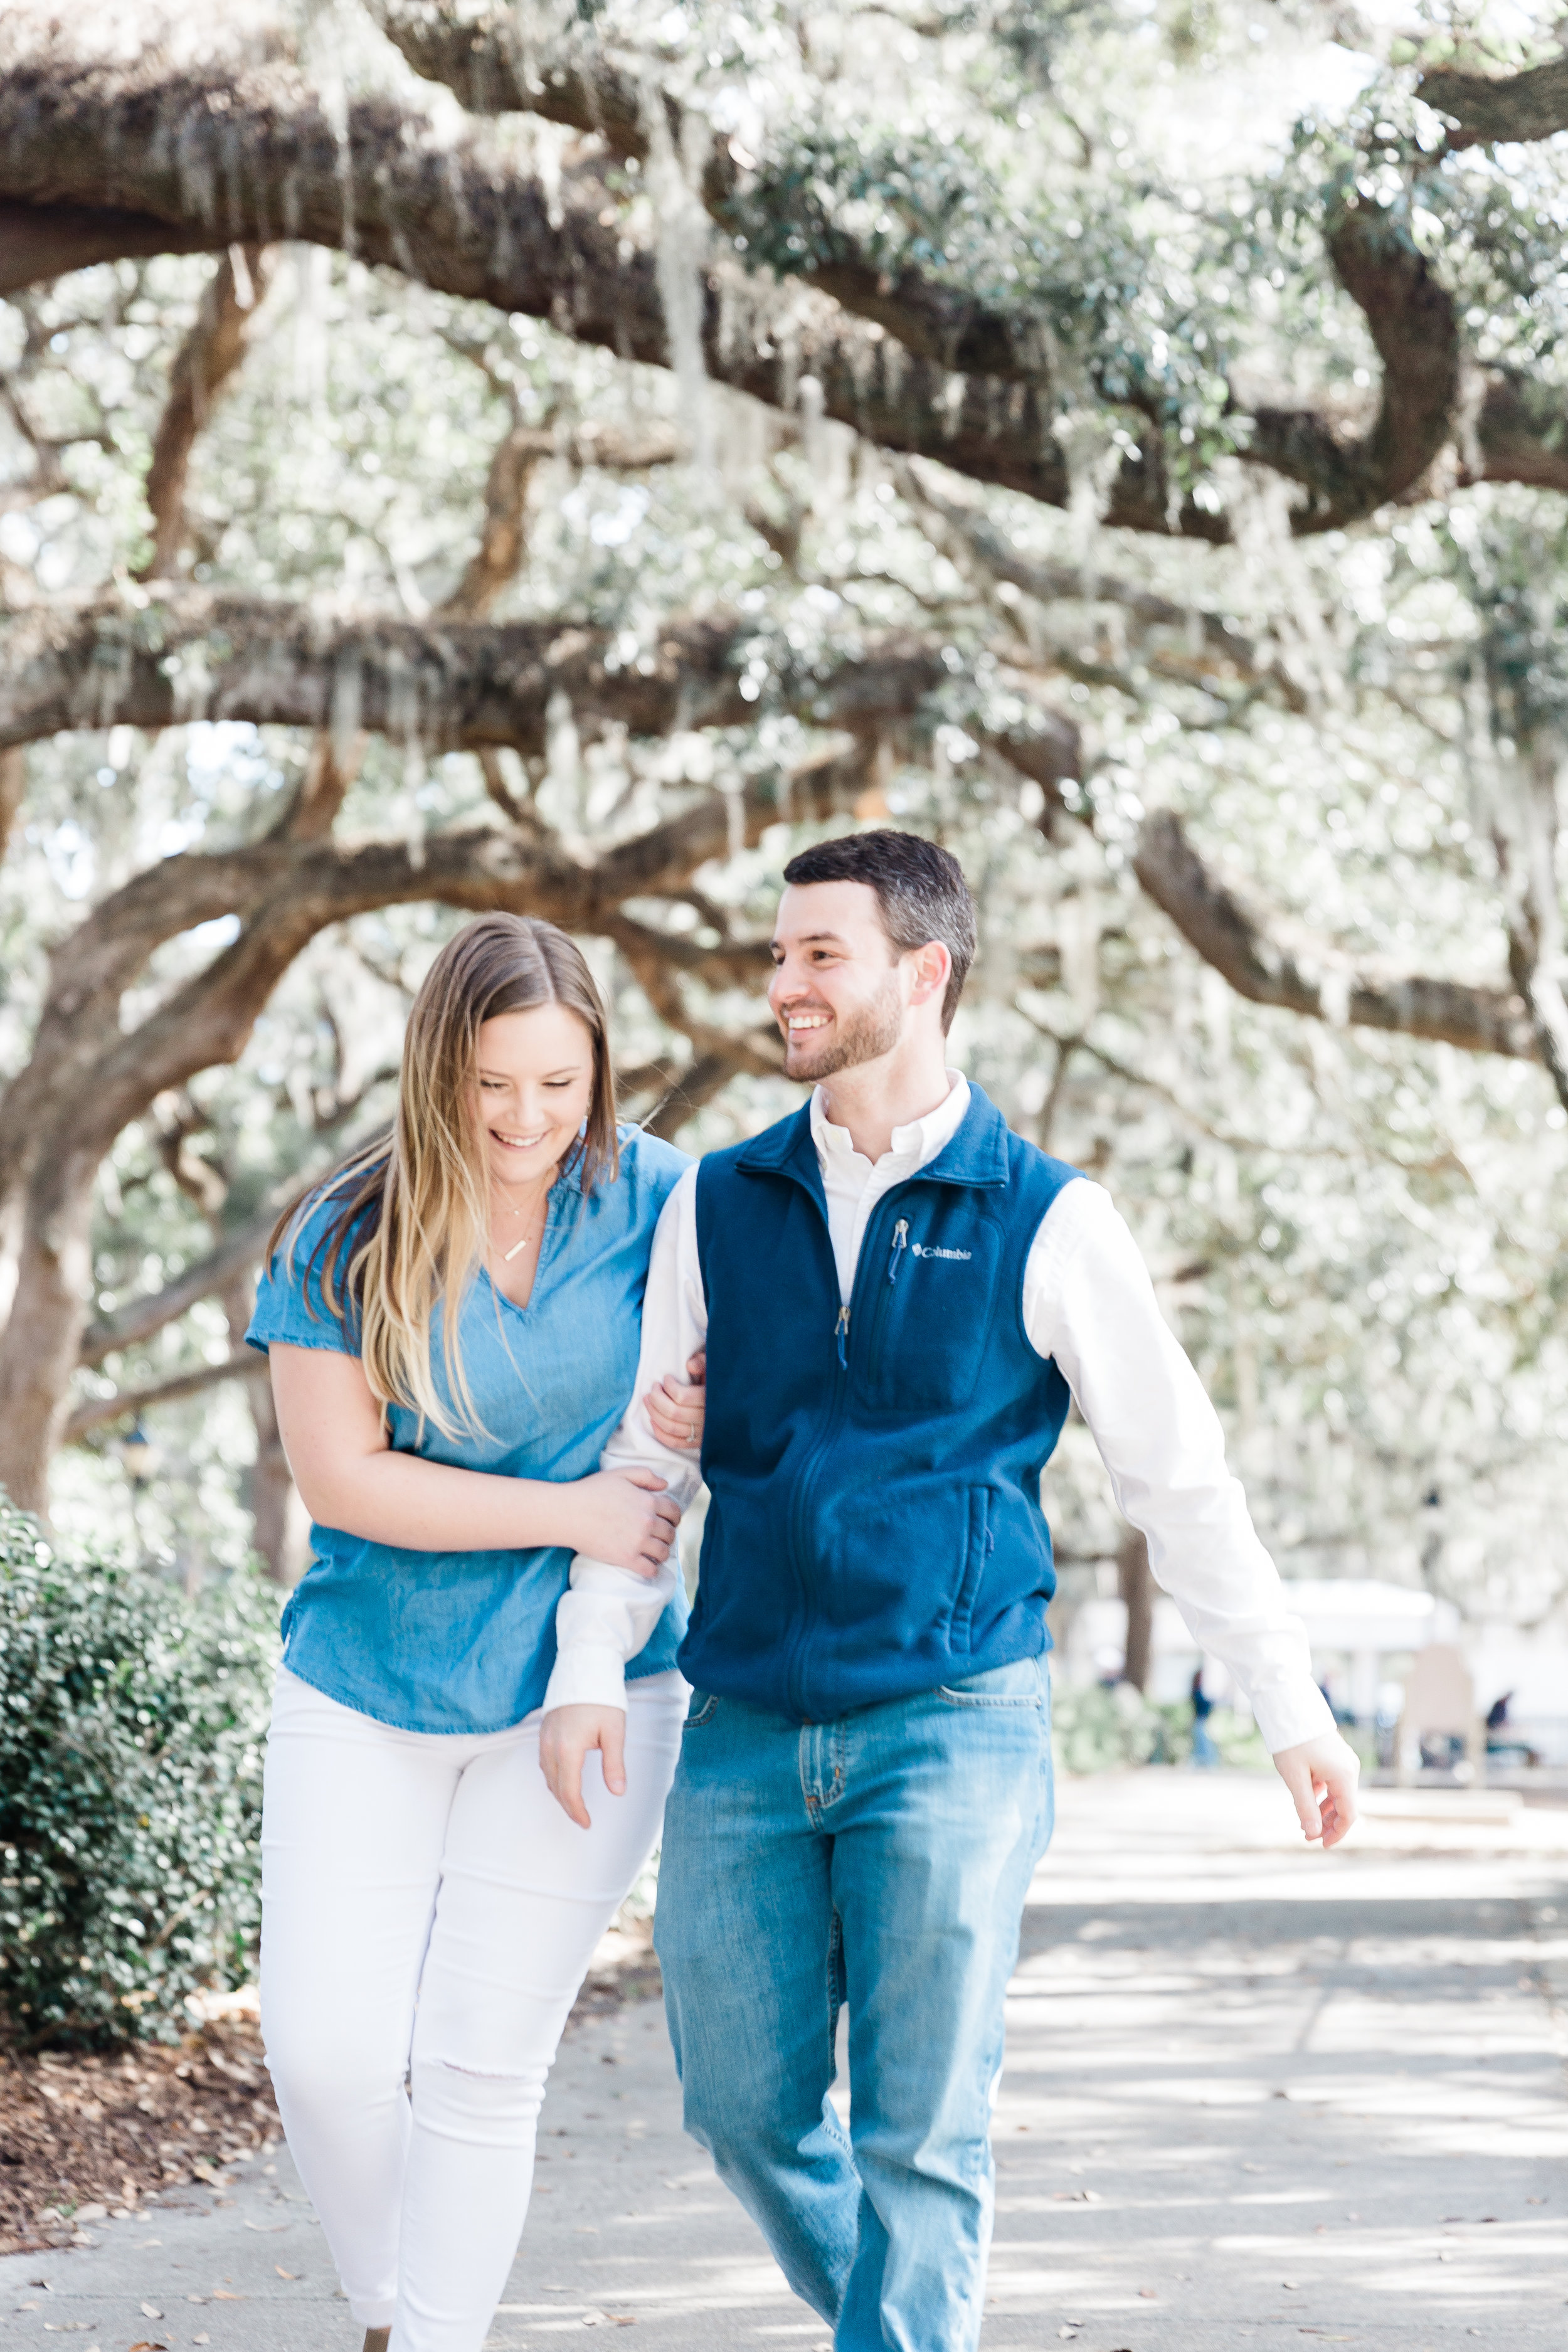 Valentines_mini_sessions_Savannah_Georgia_Photographer_Southern_Lens_Photography_Michelle_Weill_Family23.jpg